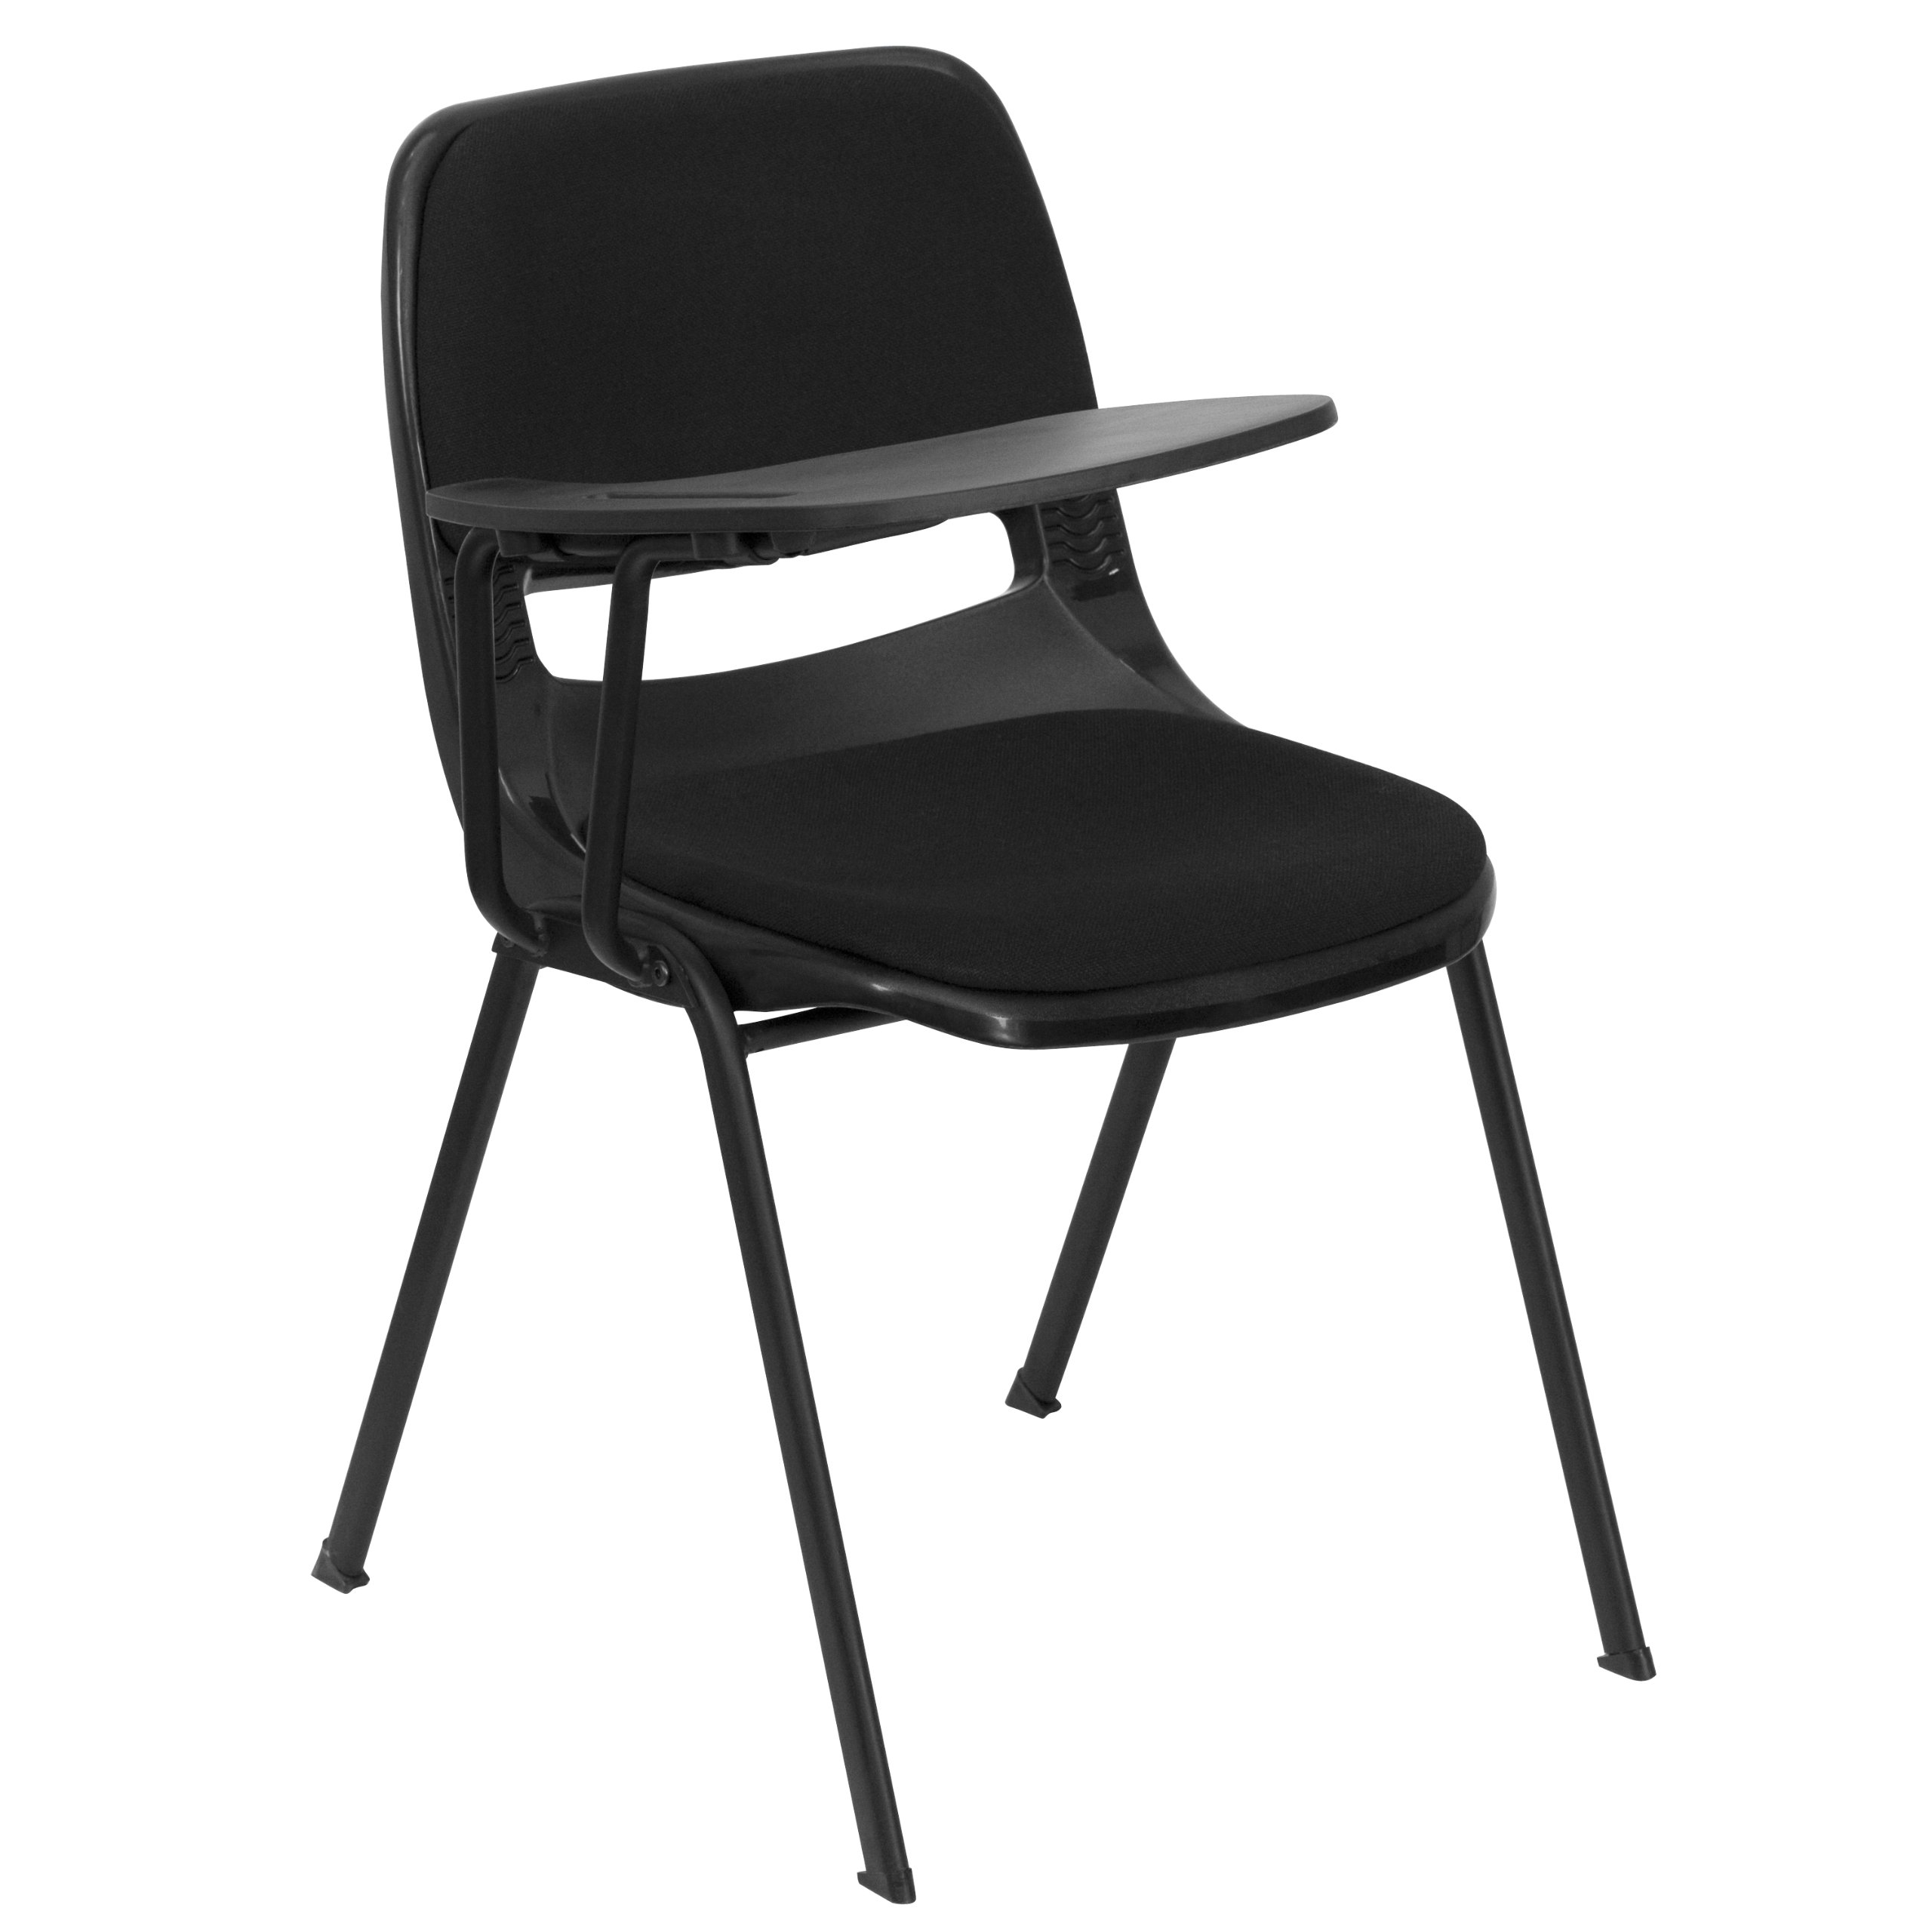 MFO Padded Black Ergonomic Shell Chair with Right Handed Flip-Up Tablet Arm